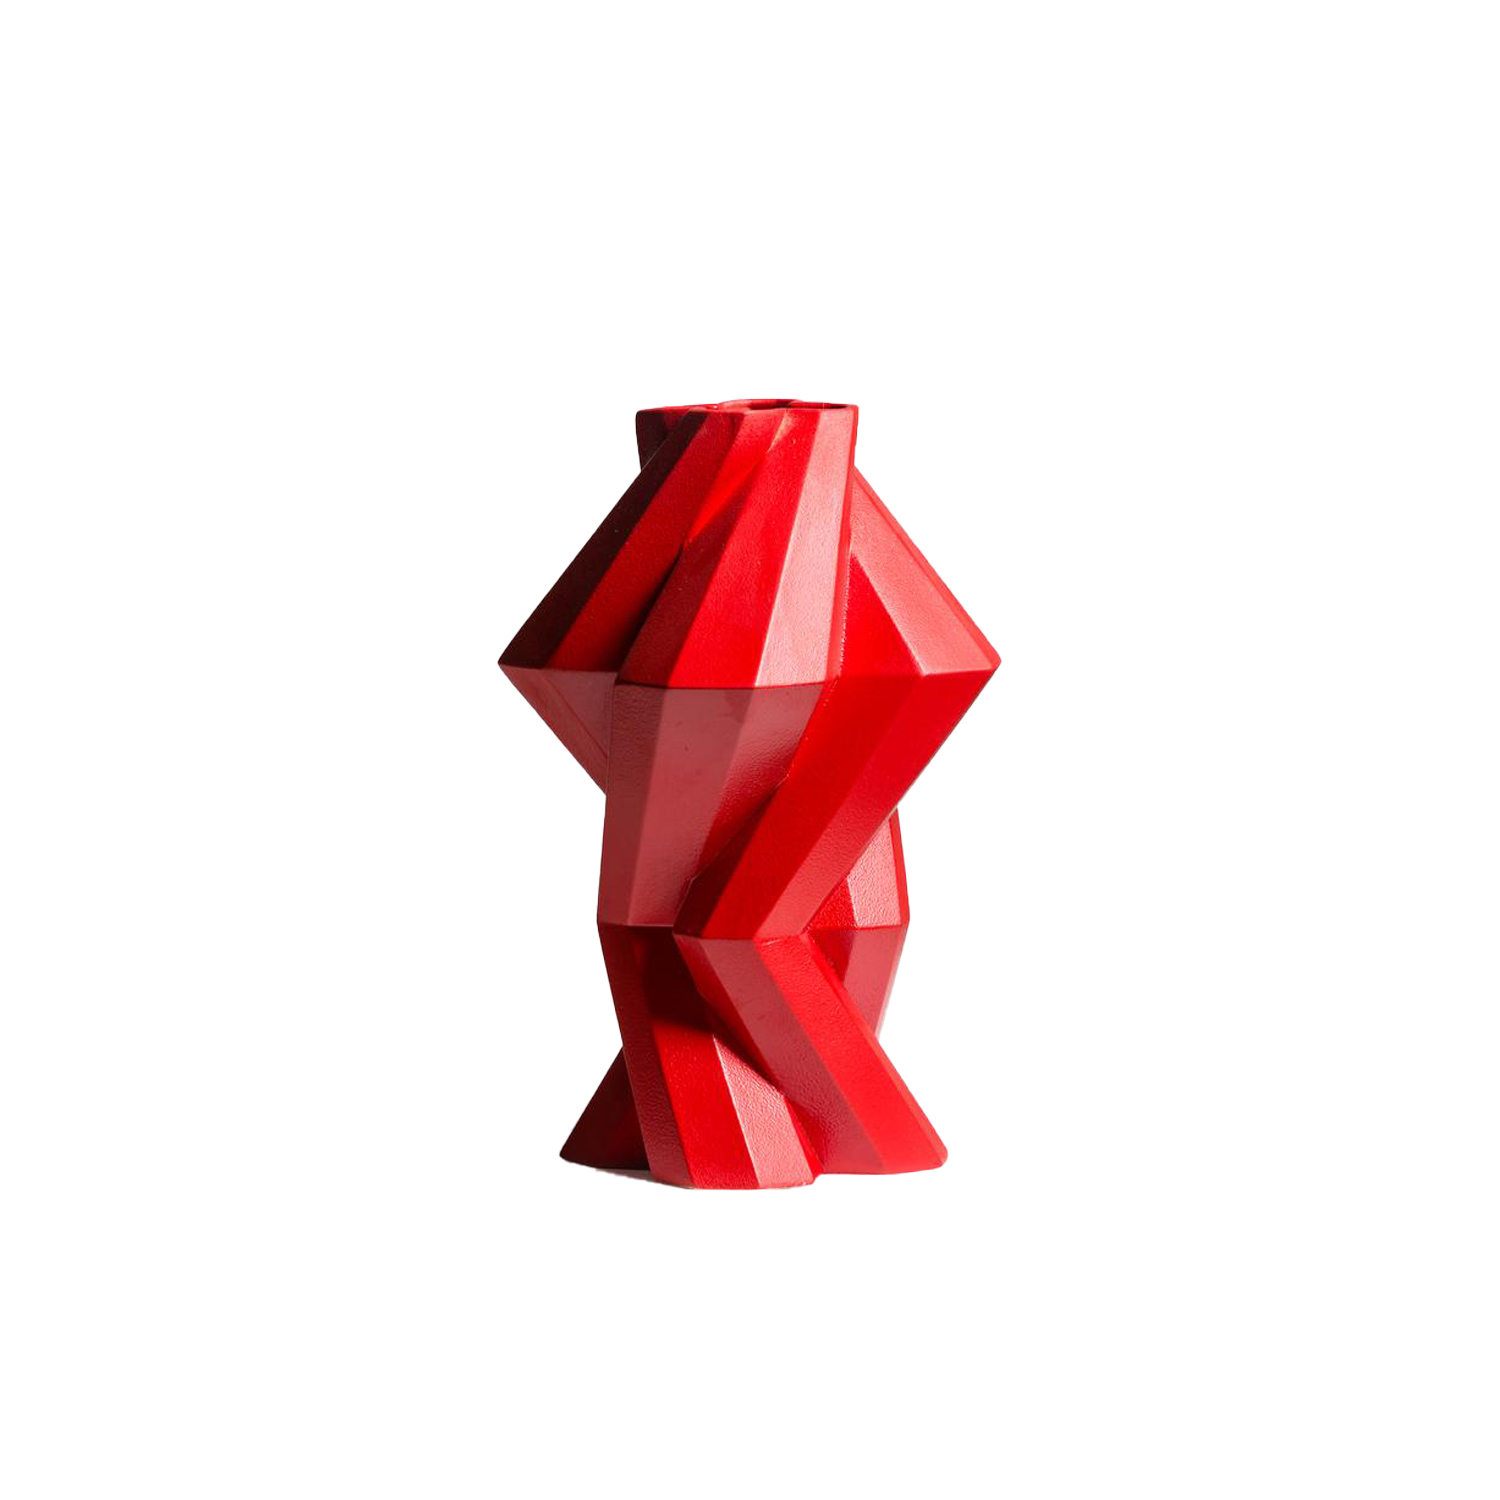 Fortress Column Vase Red - Designer Lara Bohinc explores the marriage of ancient and futuristic form in the new Fortress Vase range, which has created a more complex geometric and modern structure from the original inspiration of the octagonal towers at the Diocletian Palace in Croatia. The resulting hexagonal blocks interlock and embrace to allow the play of light and shade on the many surfaces and angles. There are four Fortress shapes: the larger Column and Castle (45cm height), the Pillar (30cm height) and the Tower vase (37cm height). These are hand made from ceramic in a small Italian artisanal workshop and come in three finishes: dark gold, bronze and speckled white.  | Matter of Stuff